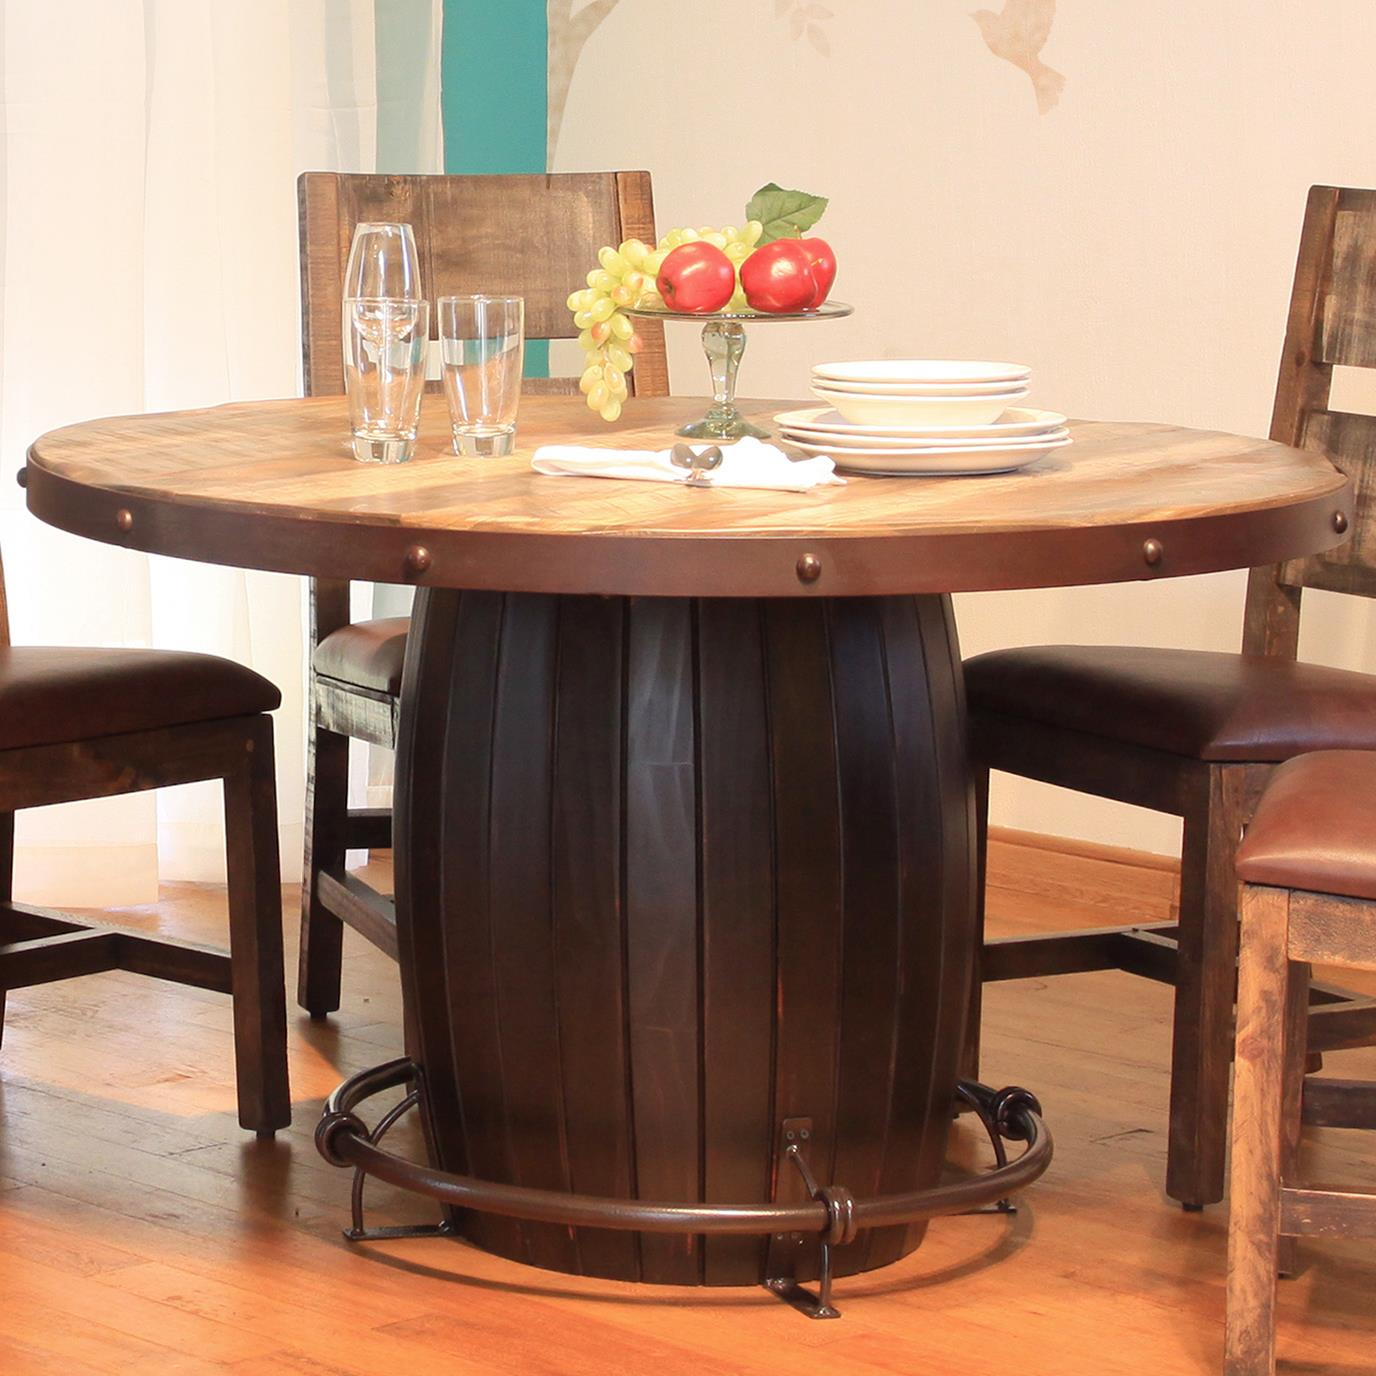 International Furniture Direct 900 Antique Round Dining Table with Barrell Base - Item Number: IFD968TABLE-B+967TABLE-T